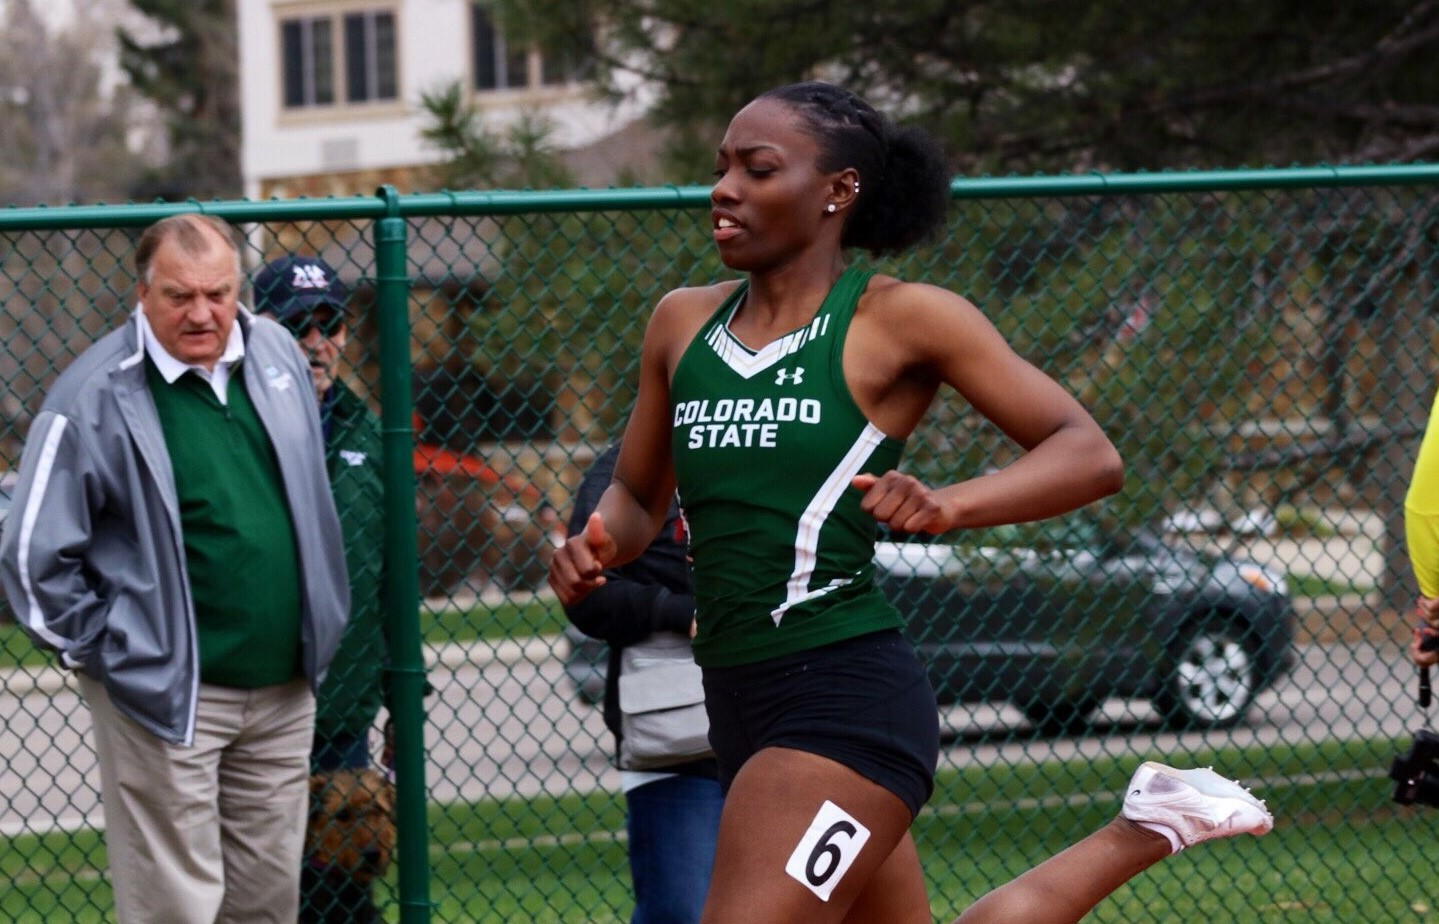 School record falls in women's 4x100 for second consecutive week